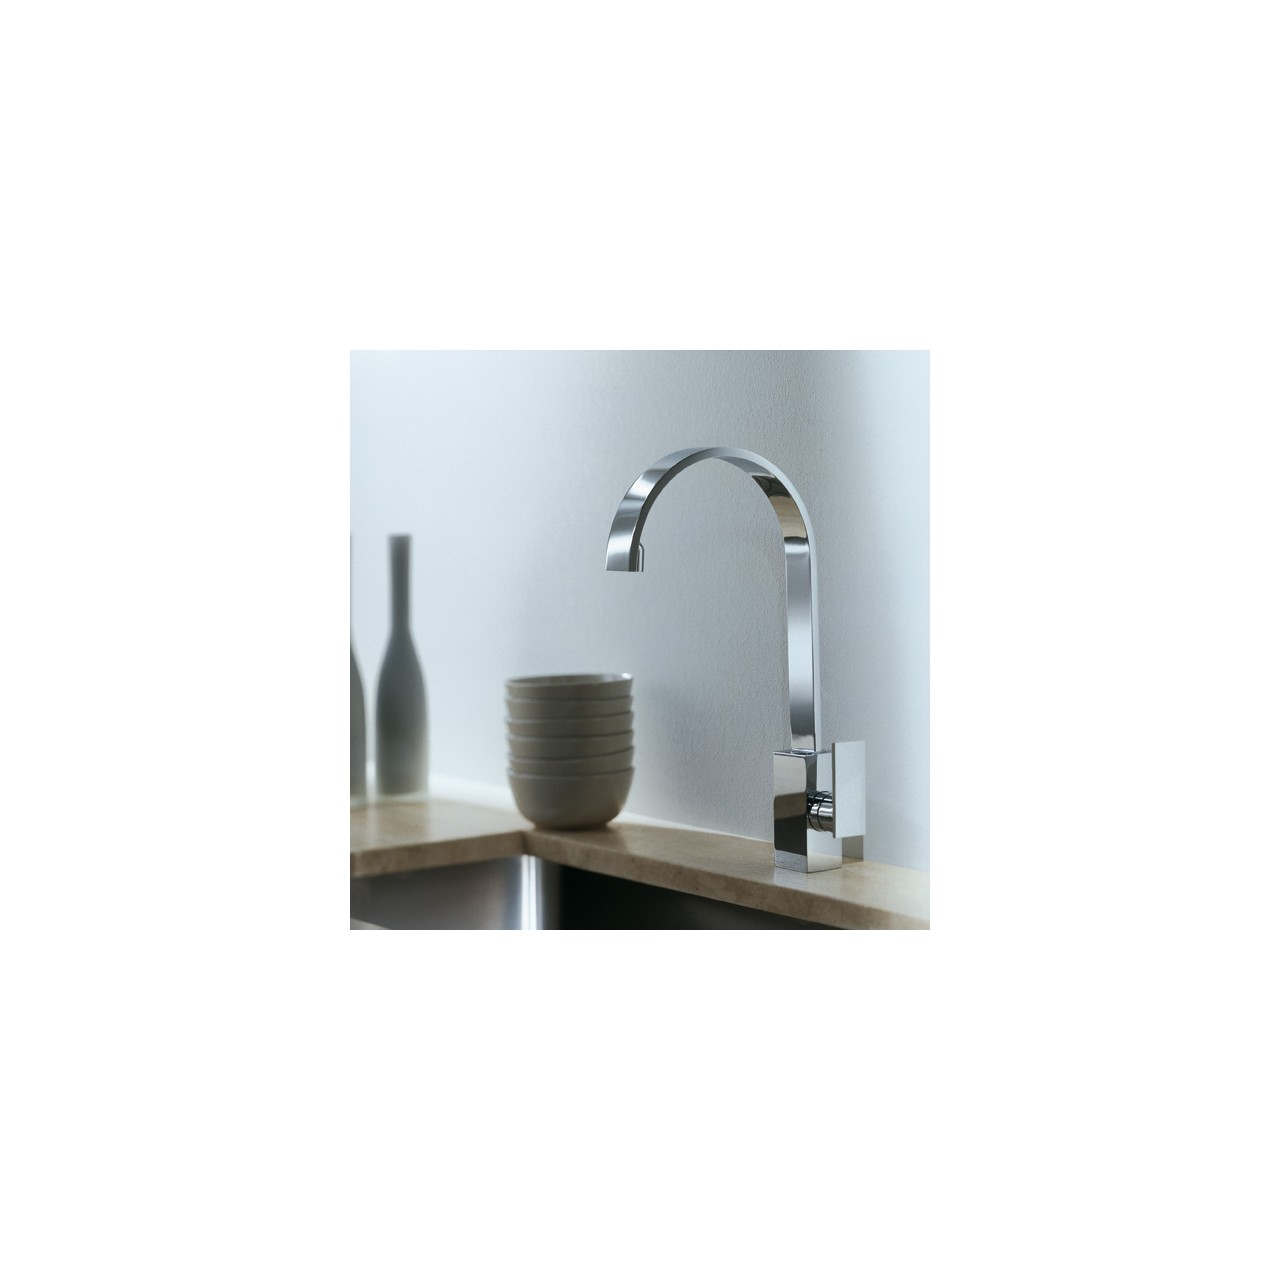 Attractive Newform Faucet Cartridge Replacement Composition - Sink ...